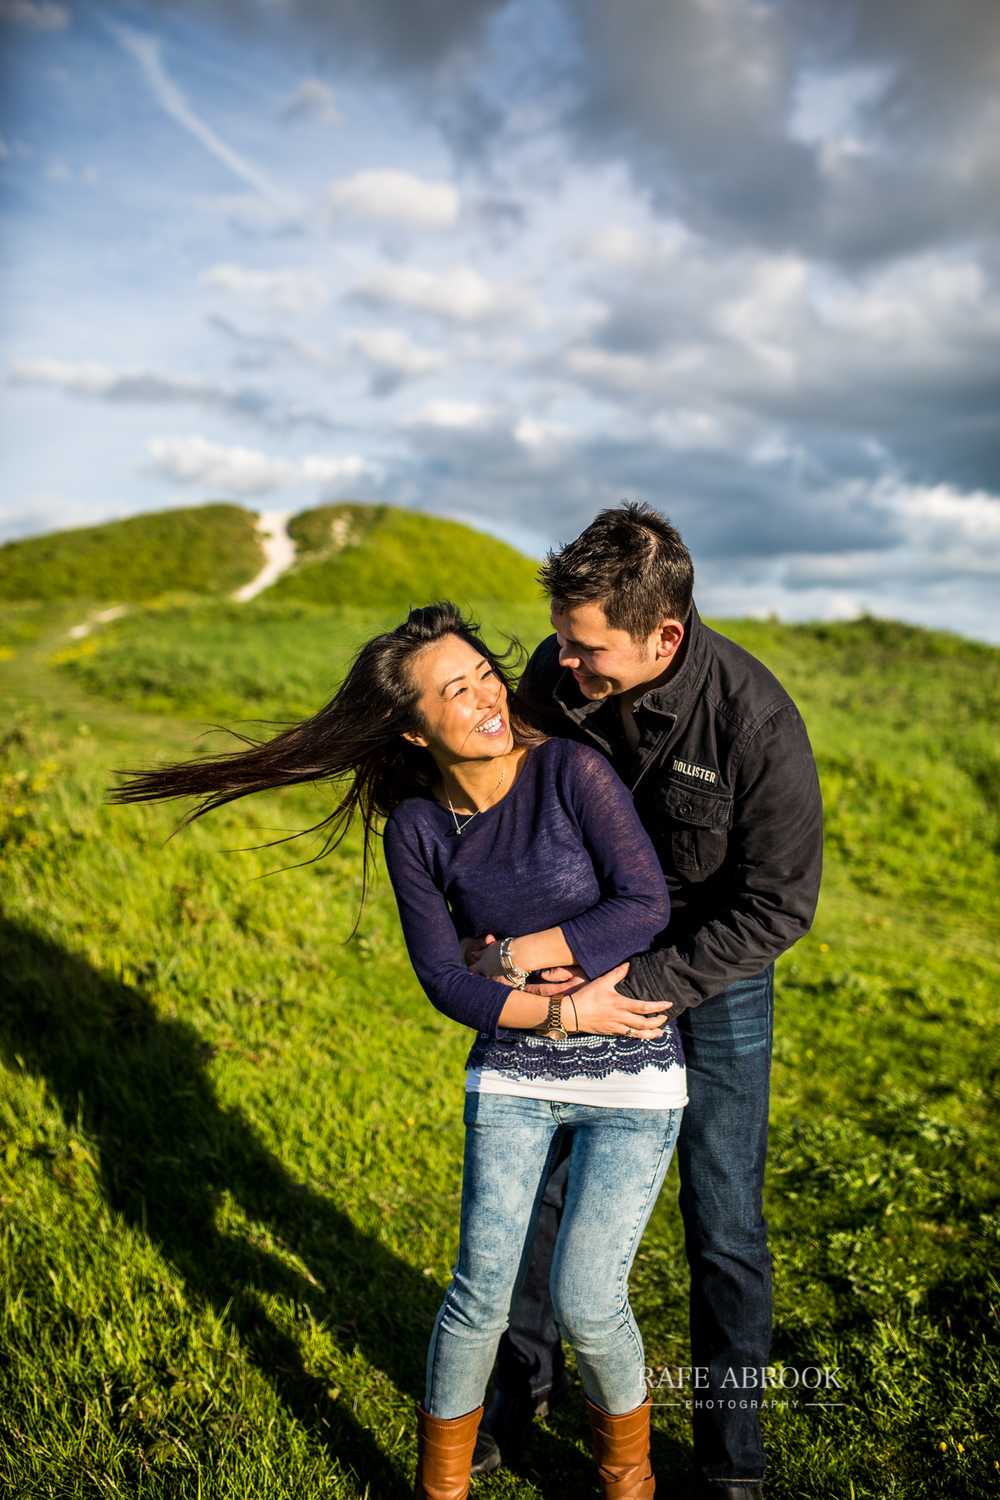 kerry & will engagement shoot totternhoe knolls dunstable bedfordshire-1048.jpg